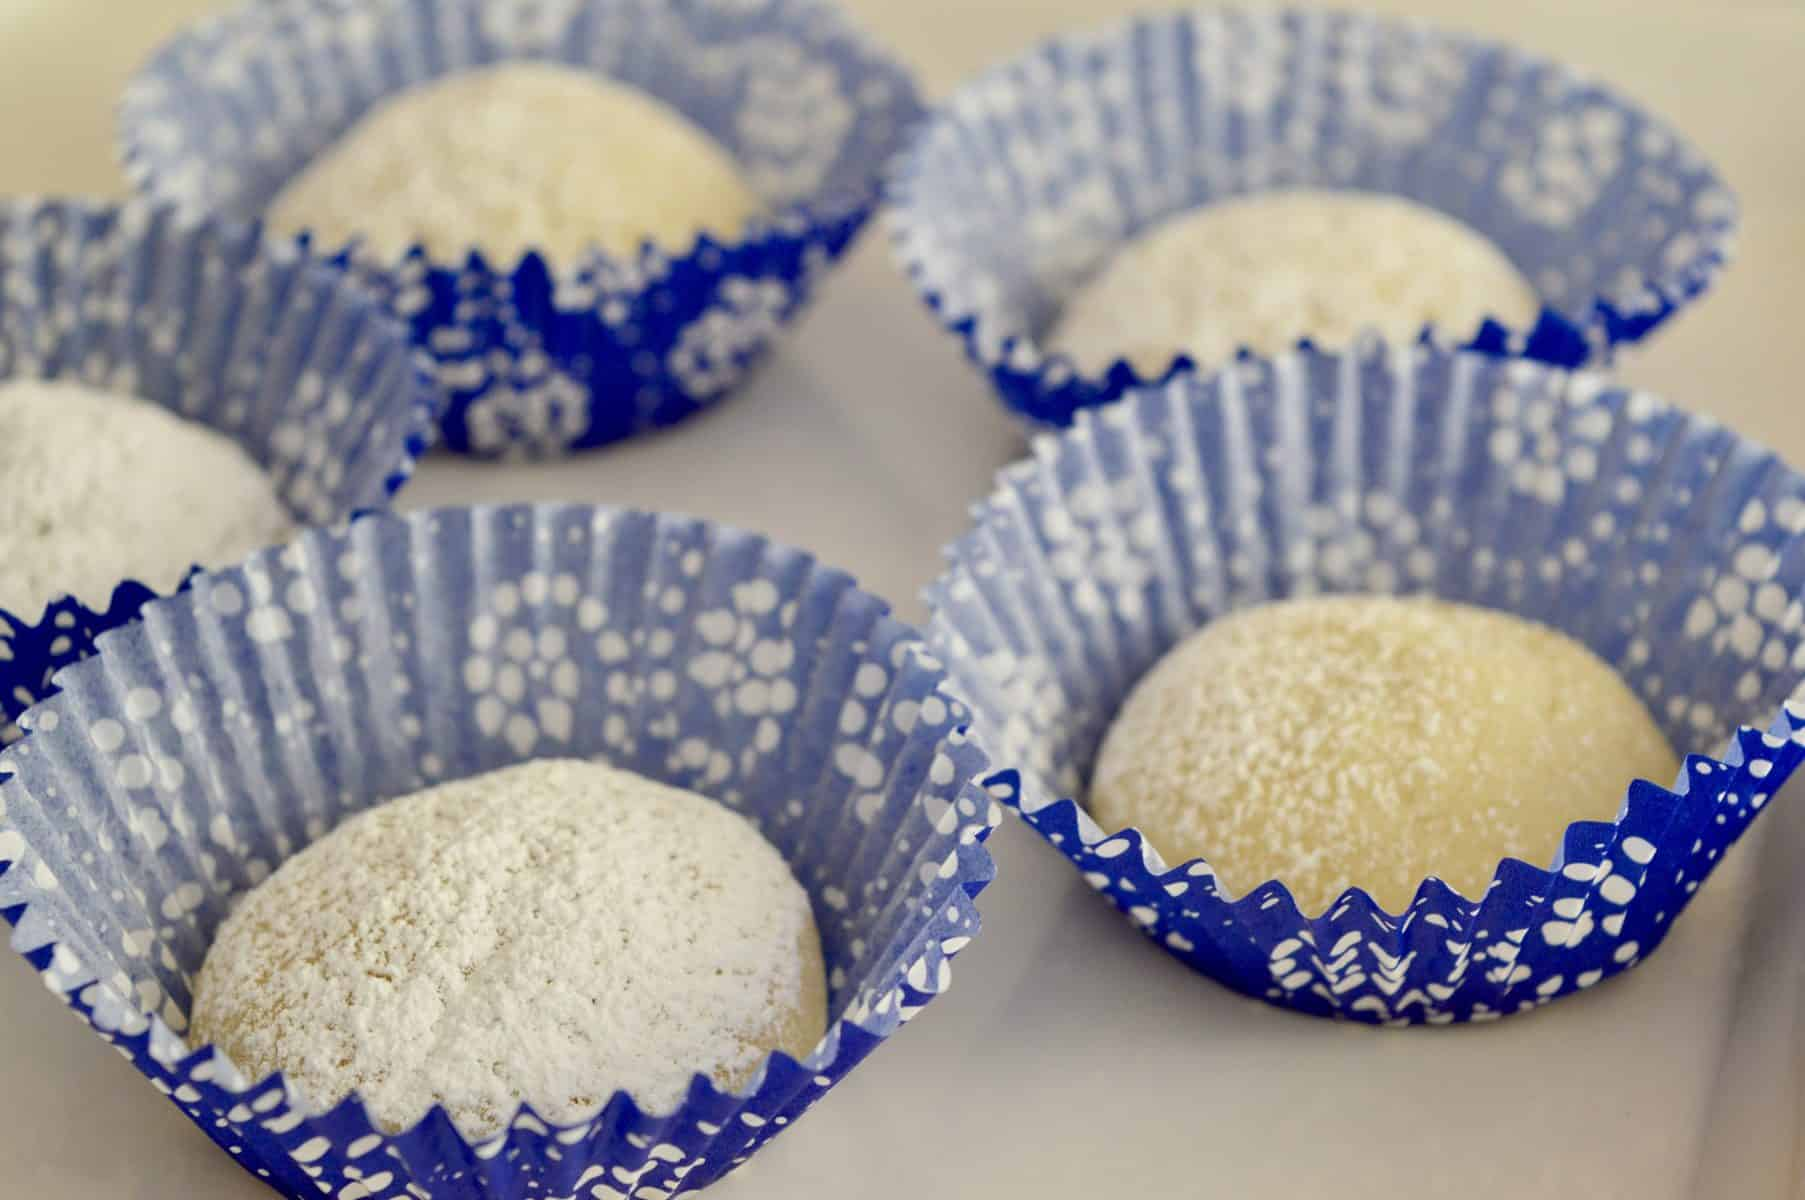 cookies served in muffin liners for mess free eating.